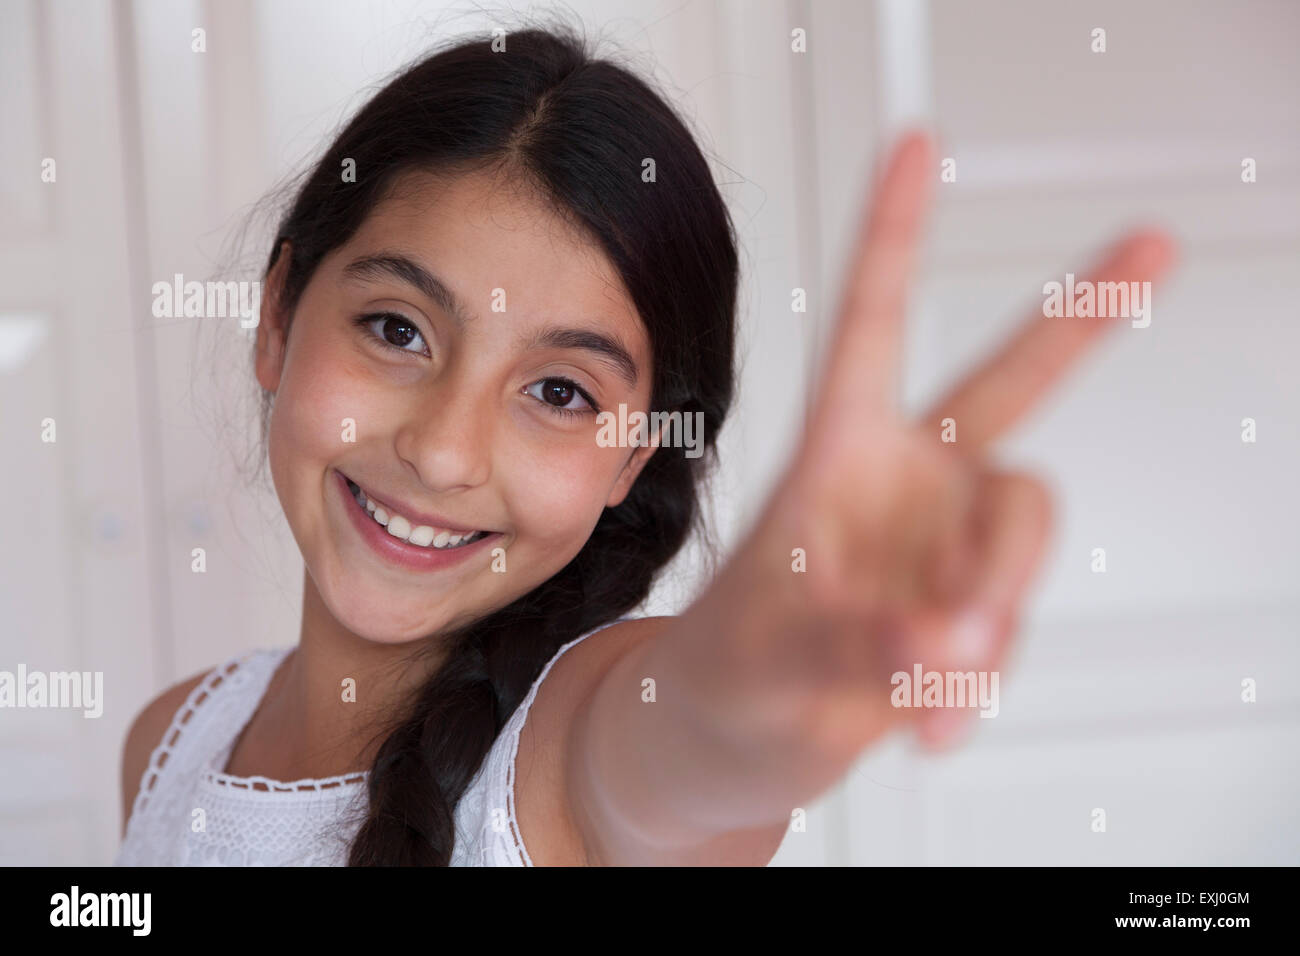 Happy teenage girl with V sign gesture - Stock Image